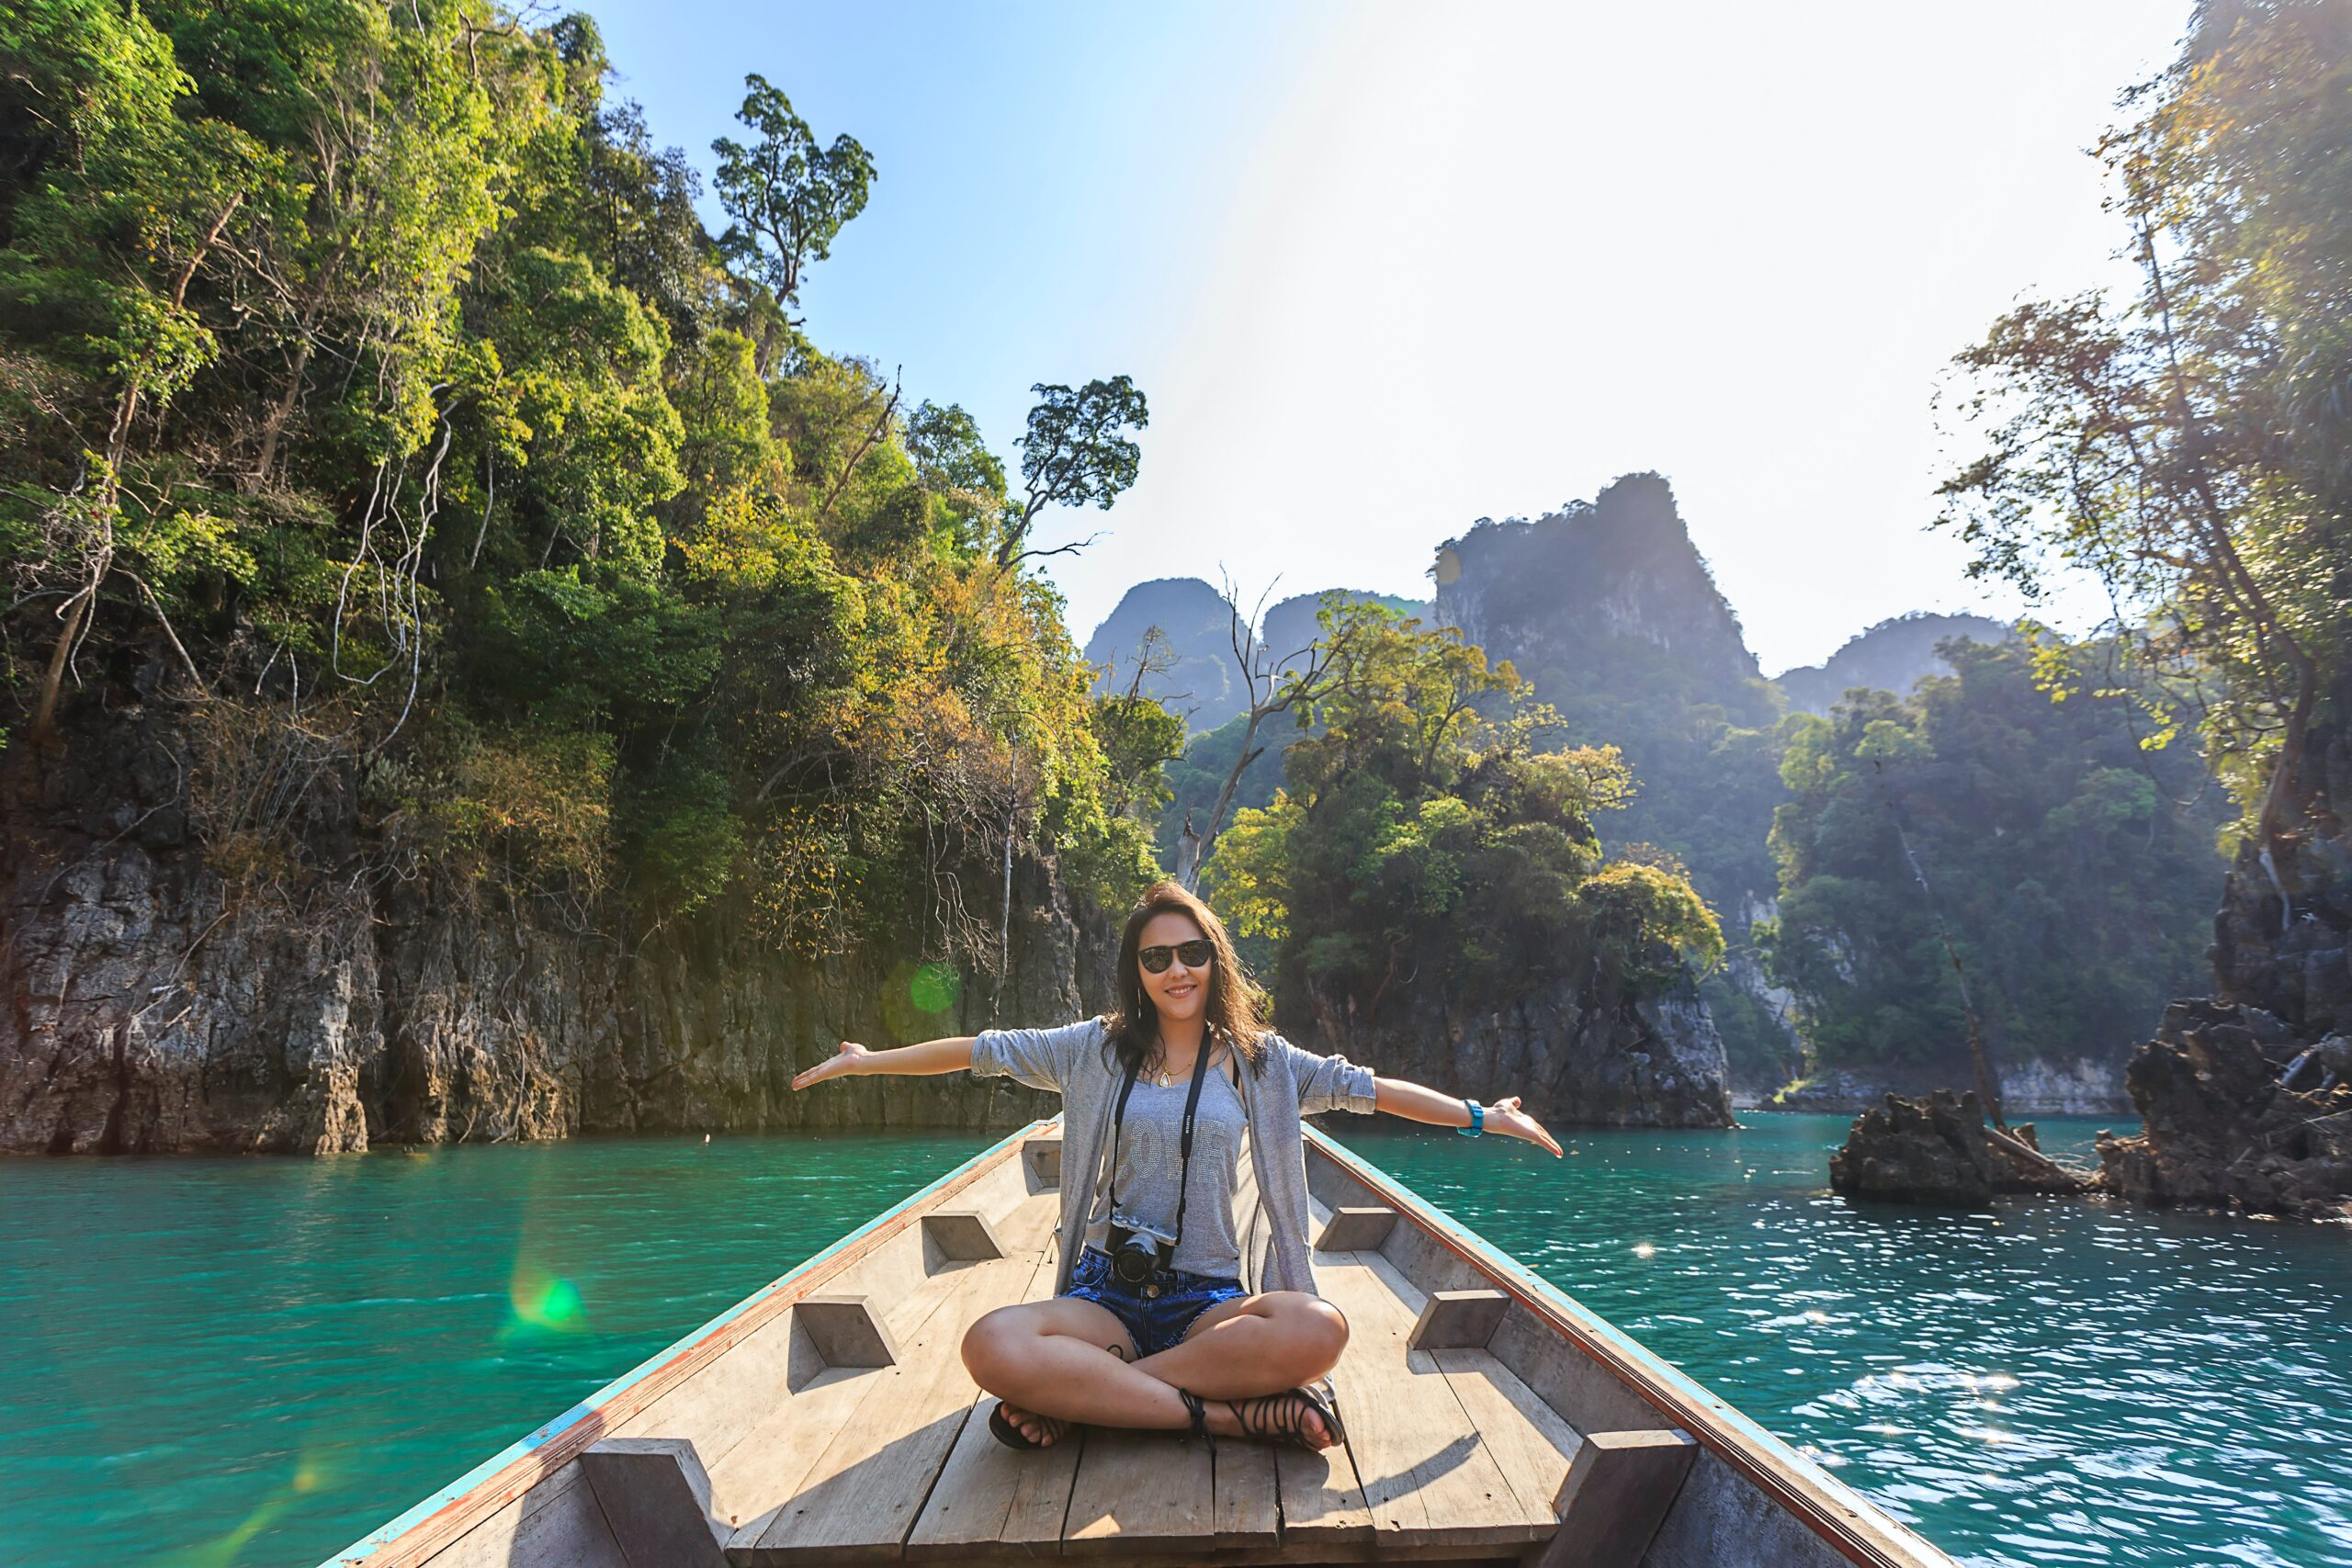 woman on vacation in boat